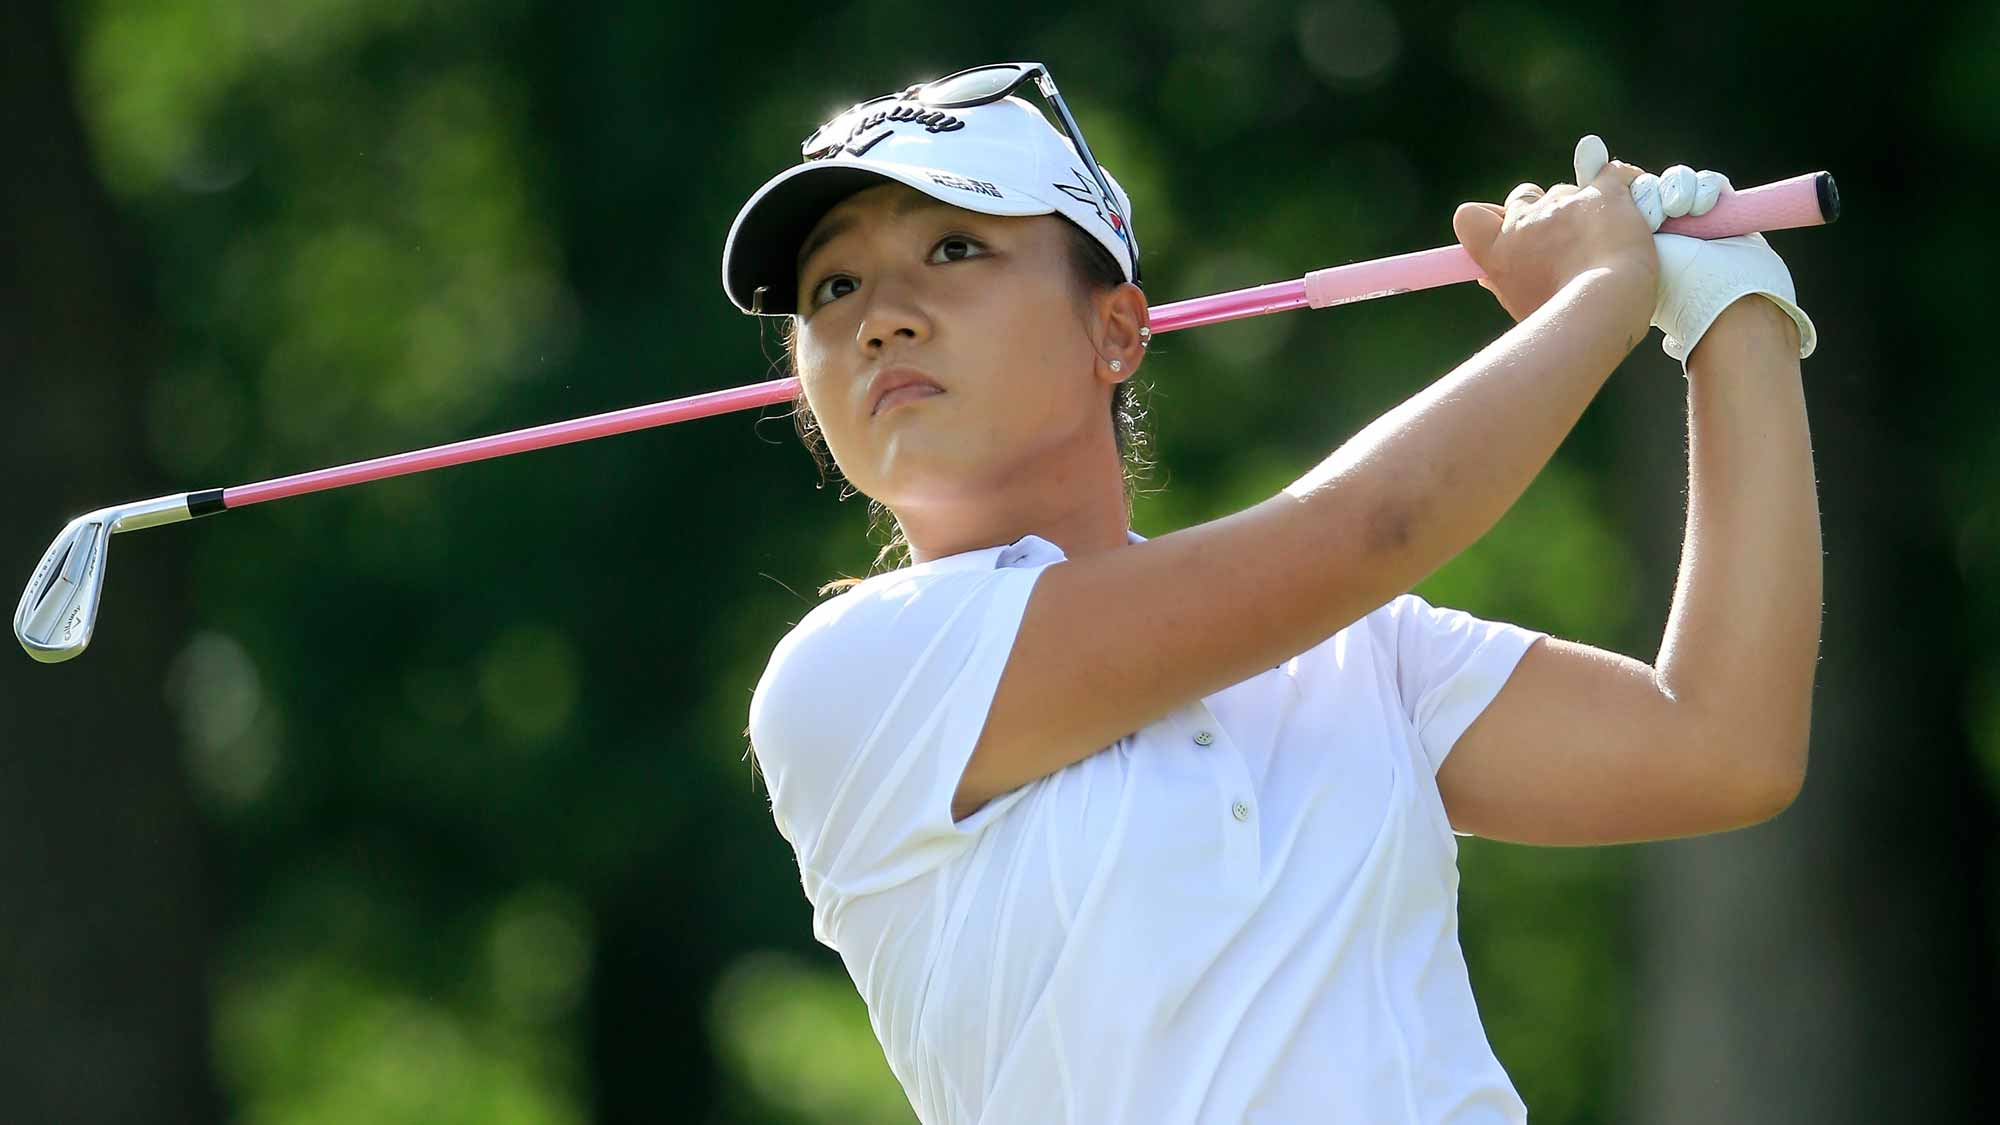 Lydia Ko of New Zealand plays a shot on the third hole during the first round of the Walmart NW Arkansas Championship Presented by P&G at Pinnacle Country Club